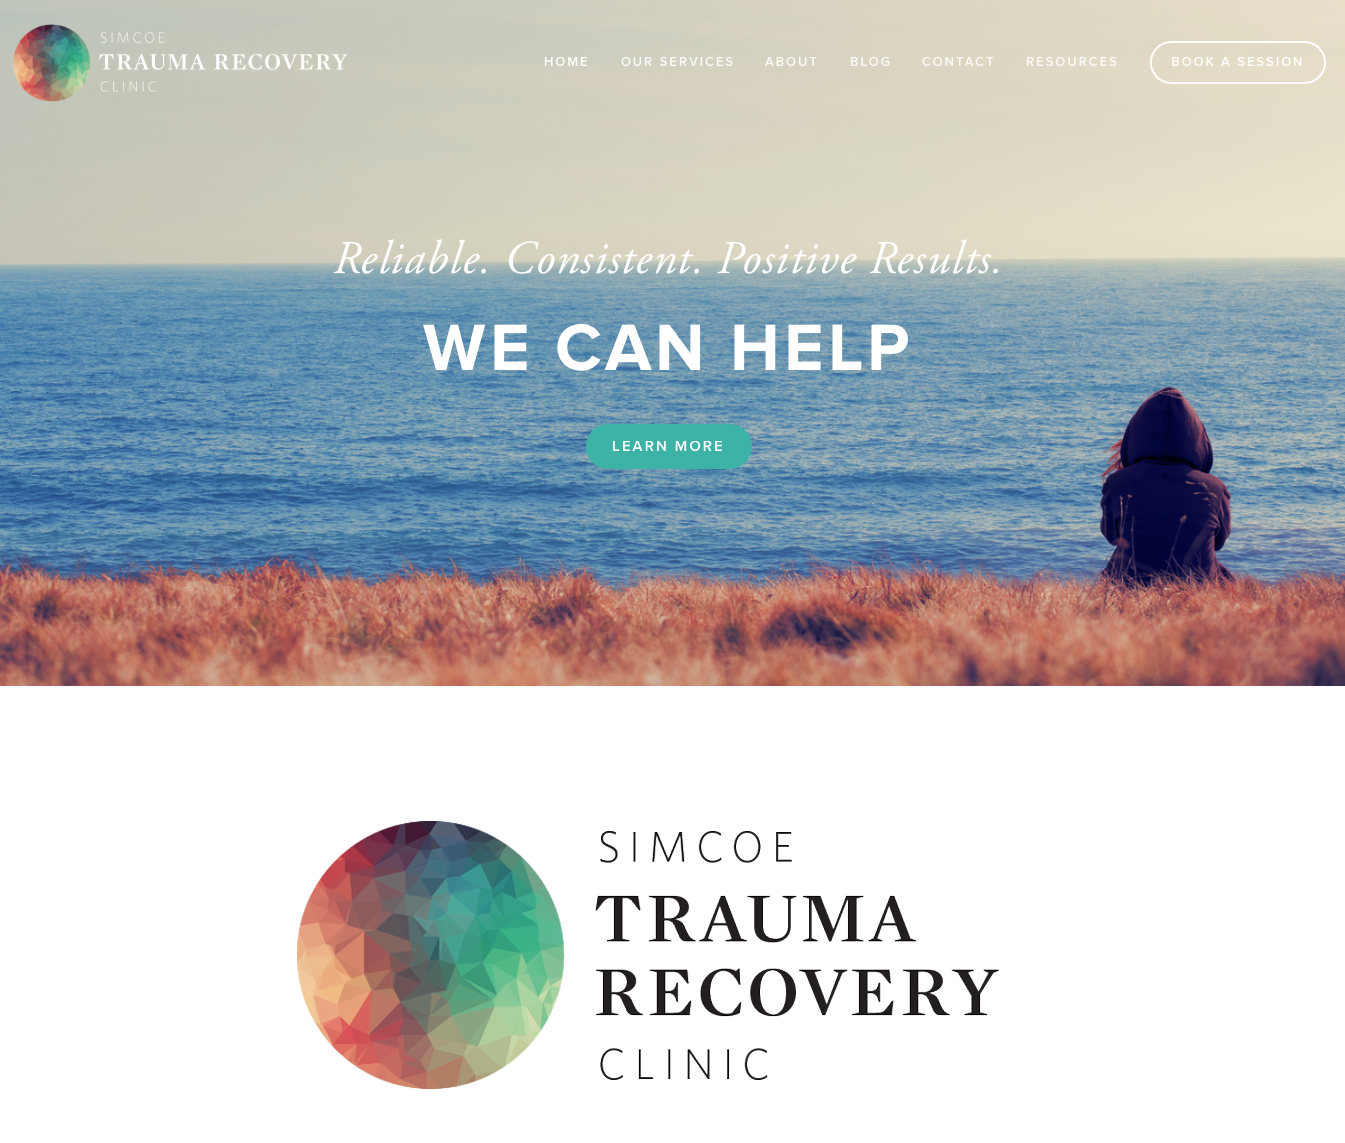 STRC.ca – hosted by Squarespace.